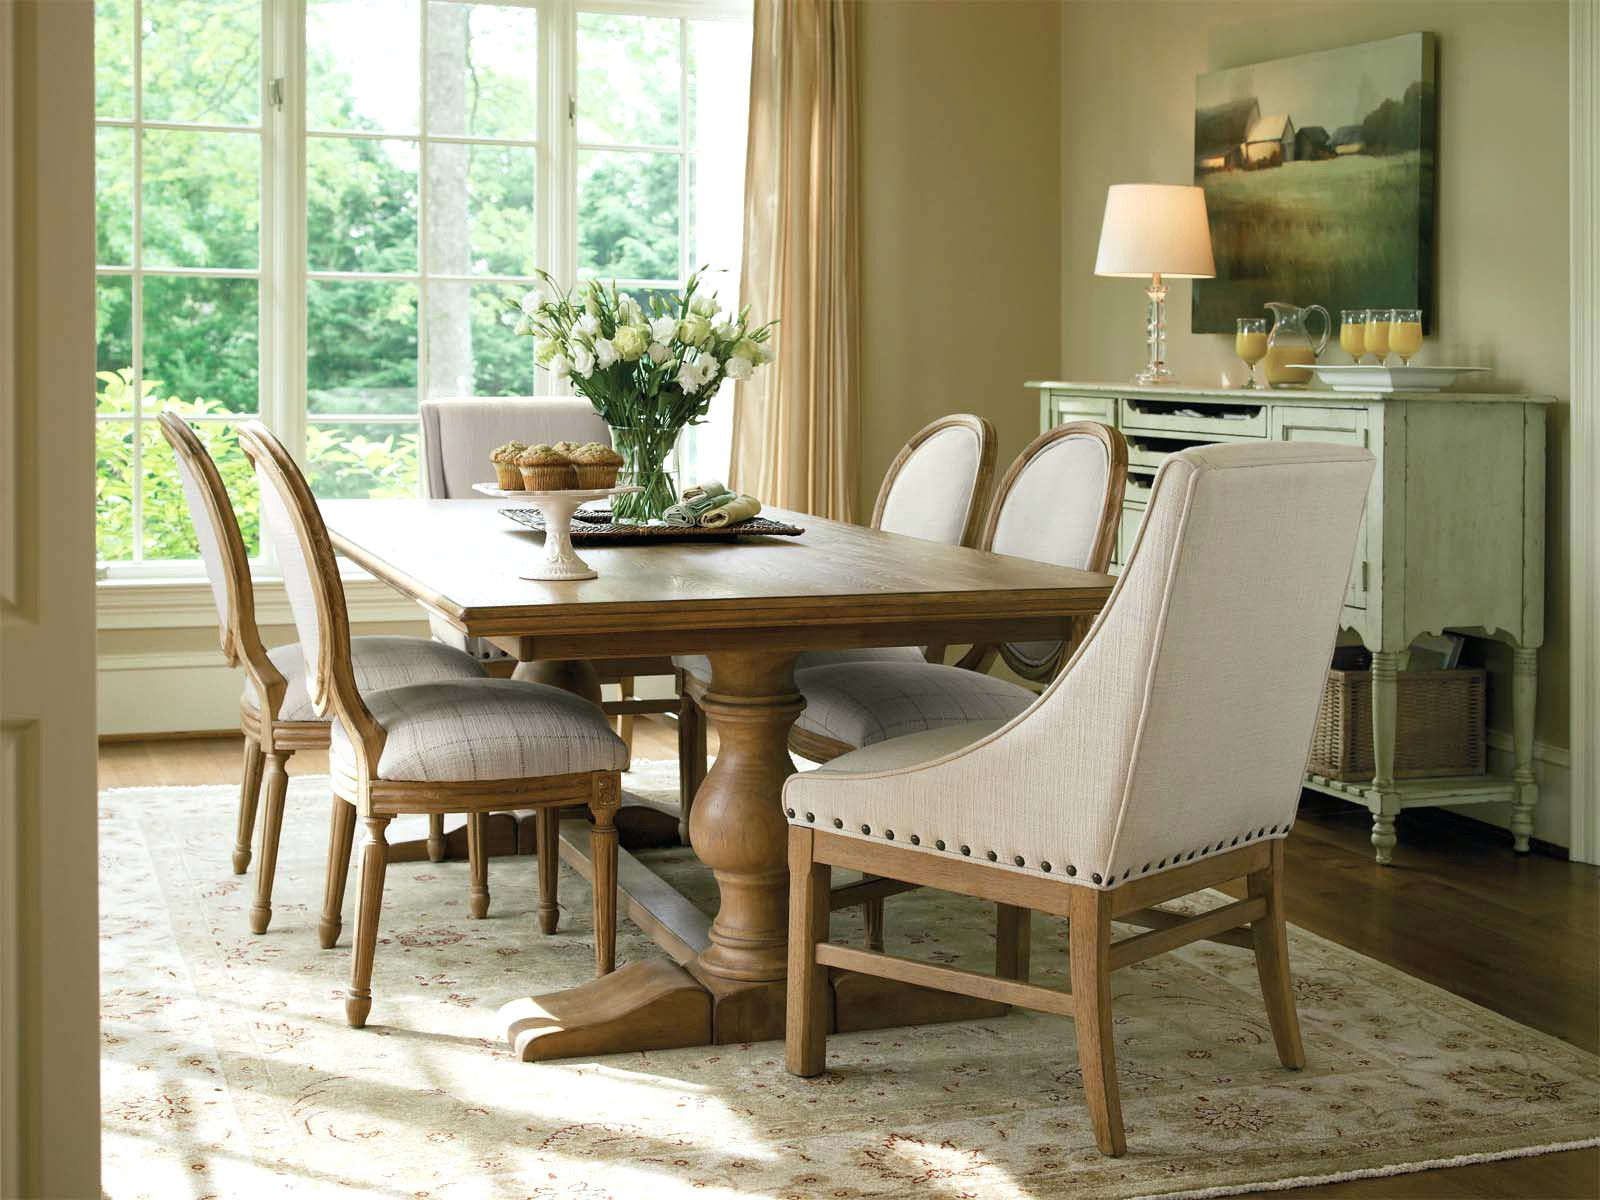 Groovy French Country Dining Table With Bench Country Style Dining Gmtry Best Dining Table And Chair Ideas Images Gmtryco